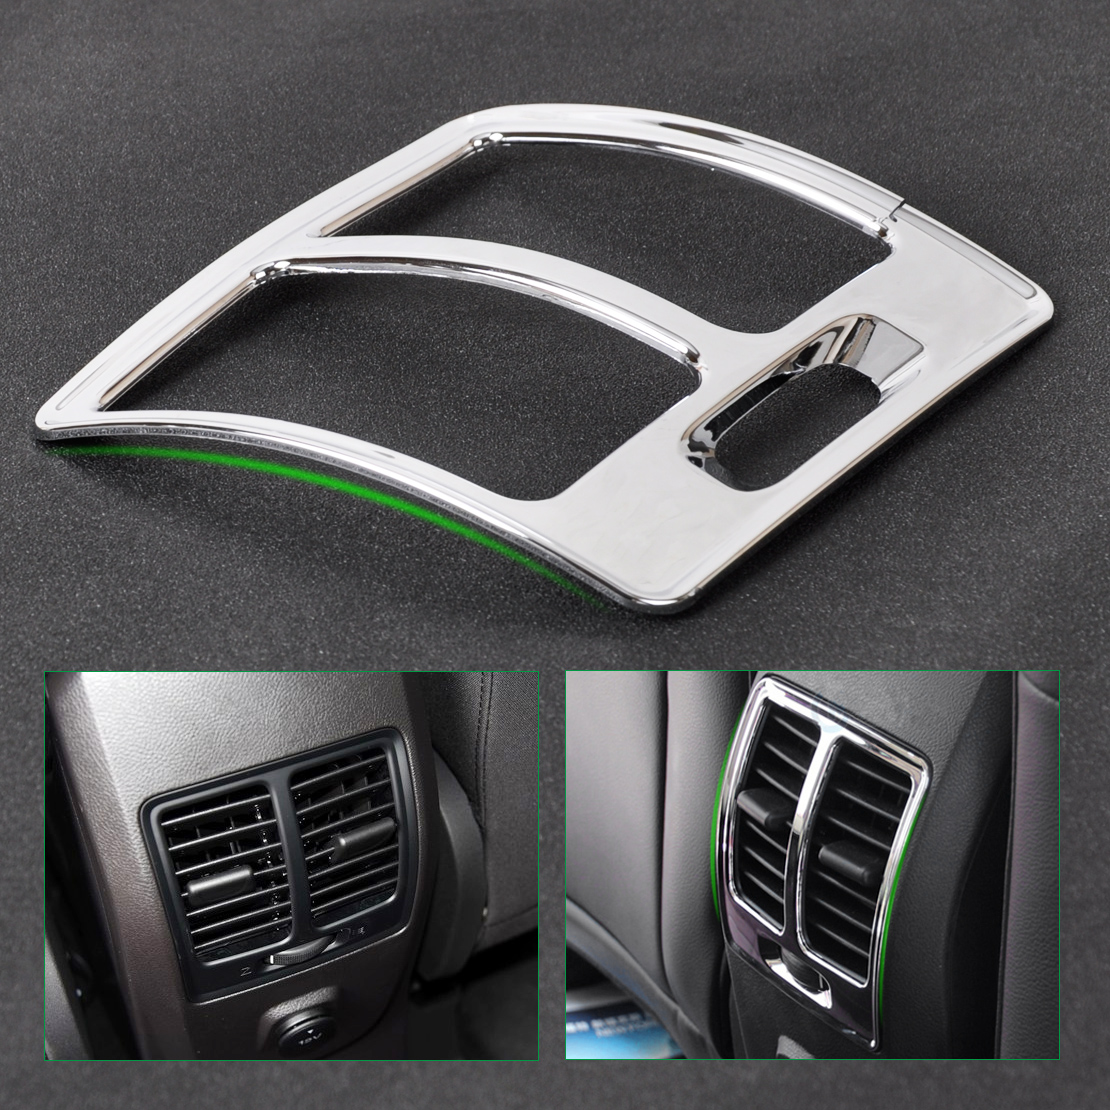 Beler new chrome armrest box rear air vent frame trim cover car accessories decoration for ford